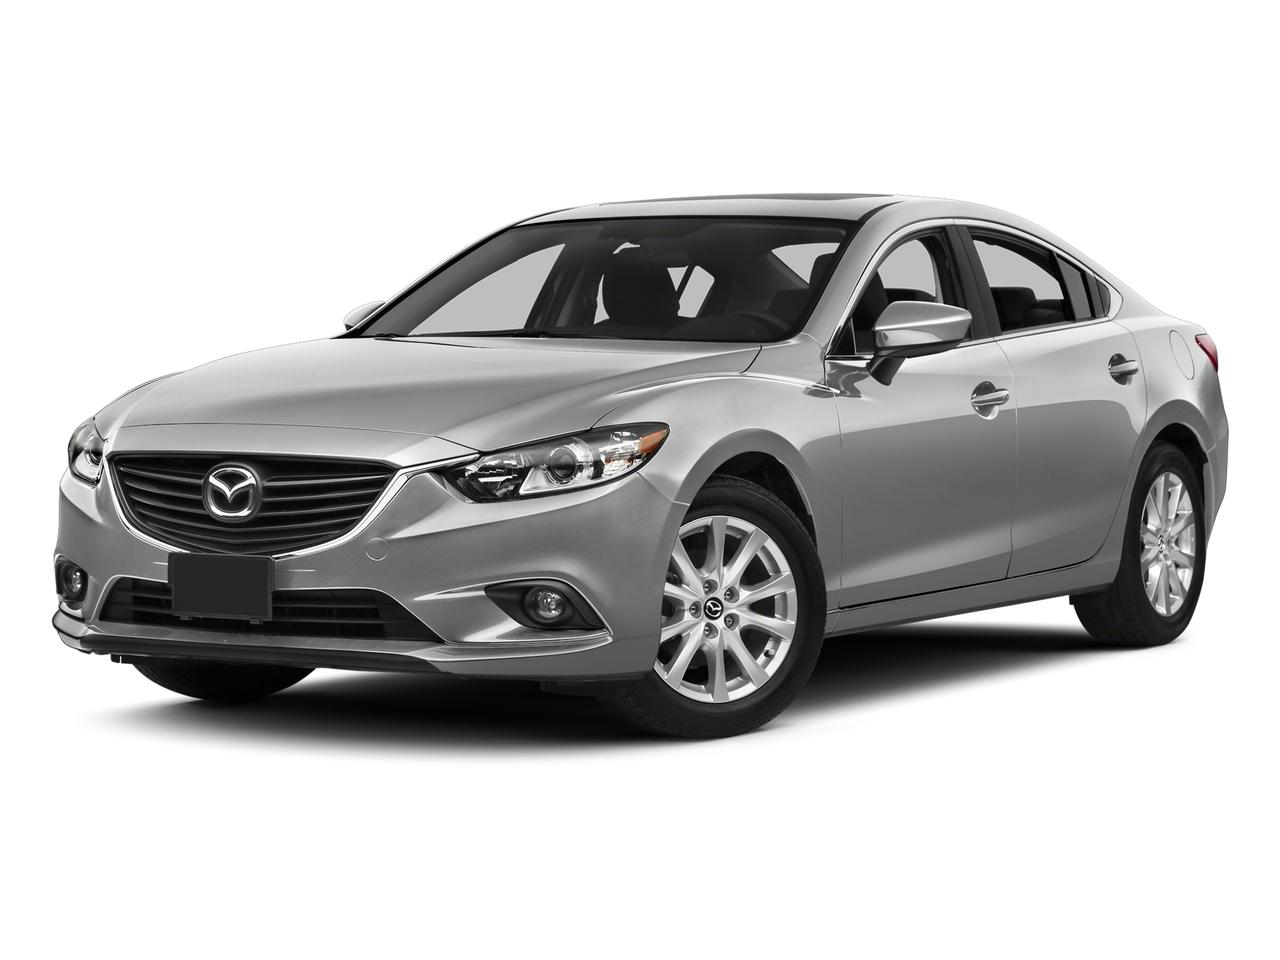 2015 Mazda Mazda6 Vehicle Photo in San Antonio, TX 78257